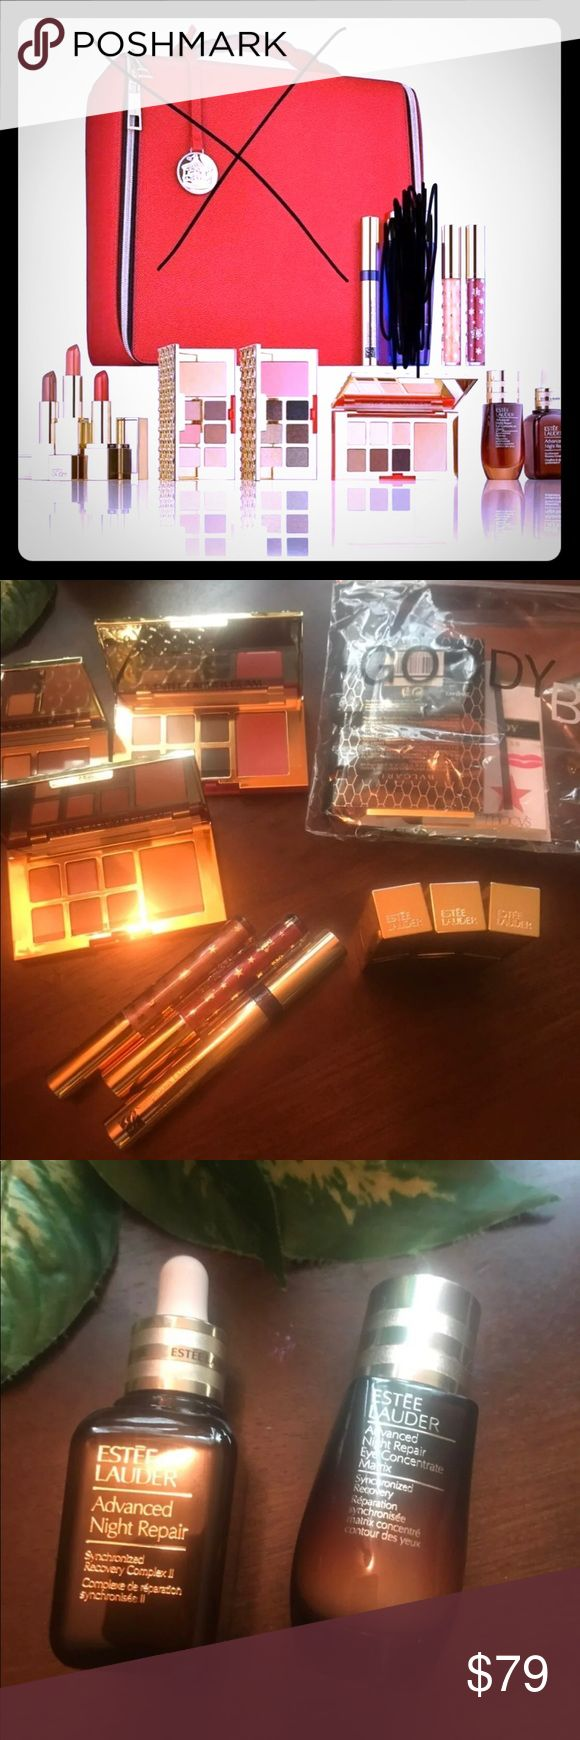 Estee lauder holiday 2019 set worth 130 (With images